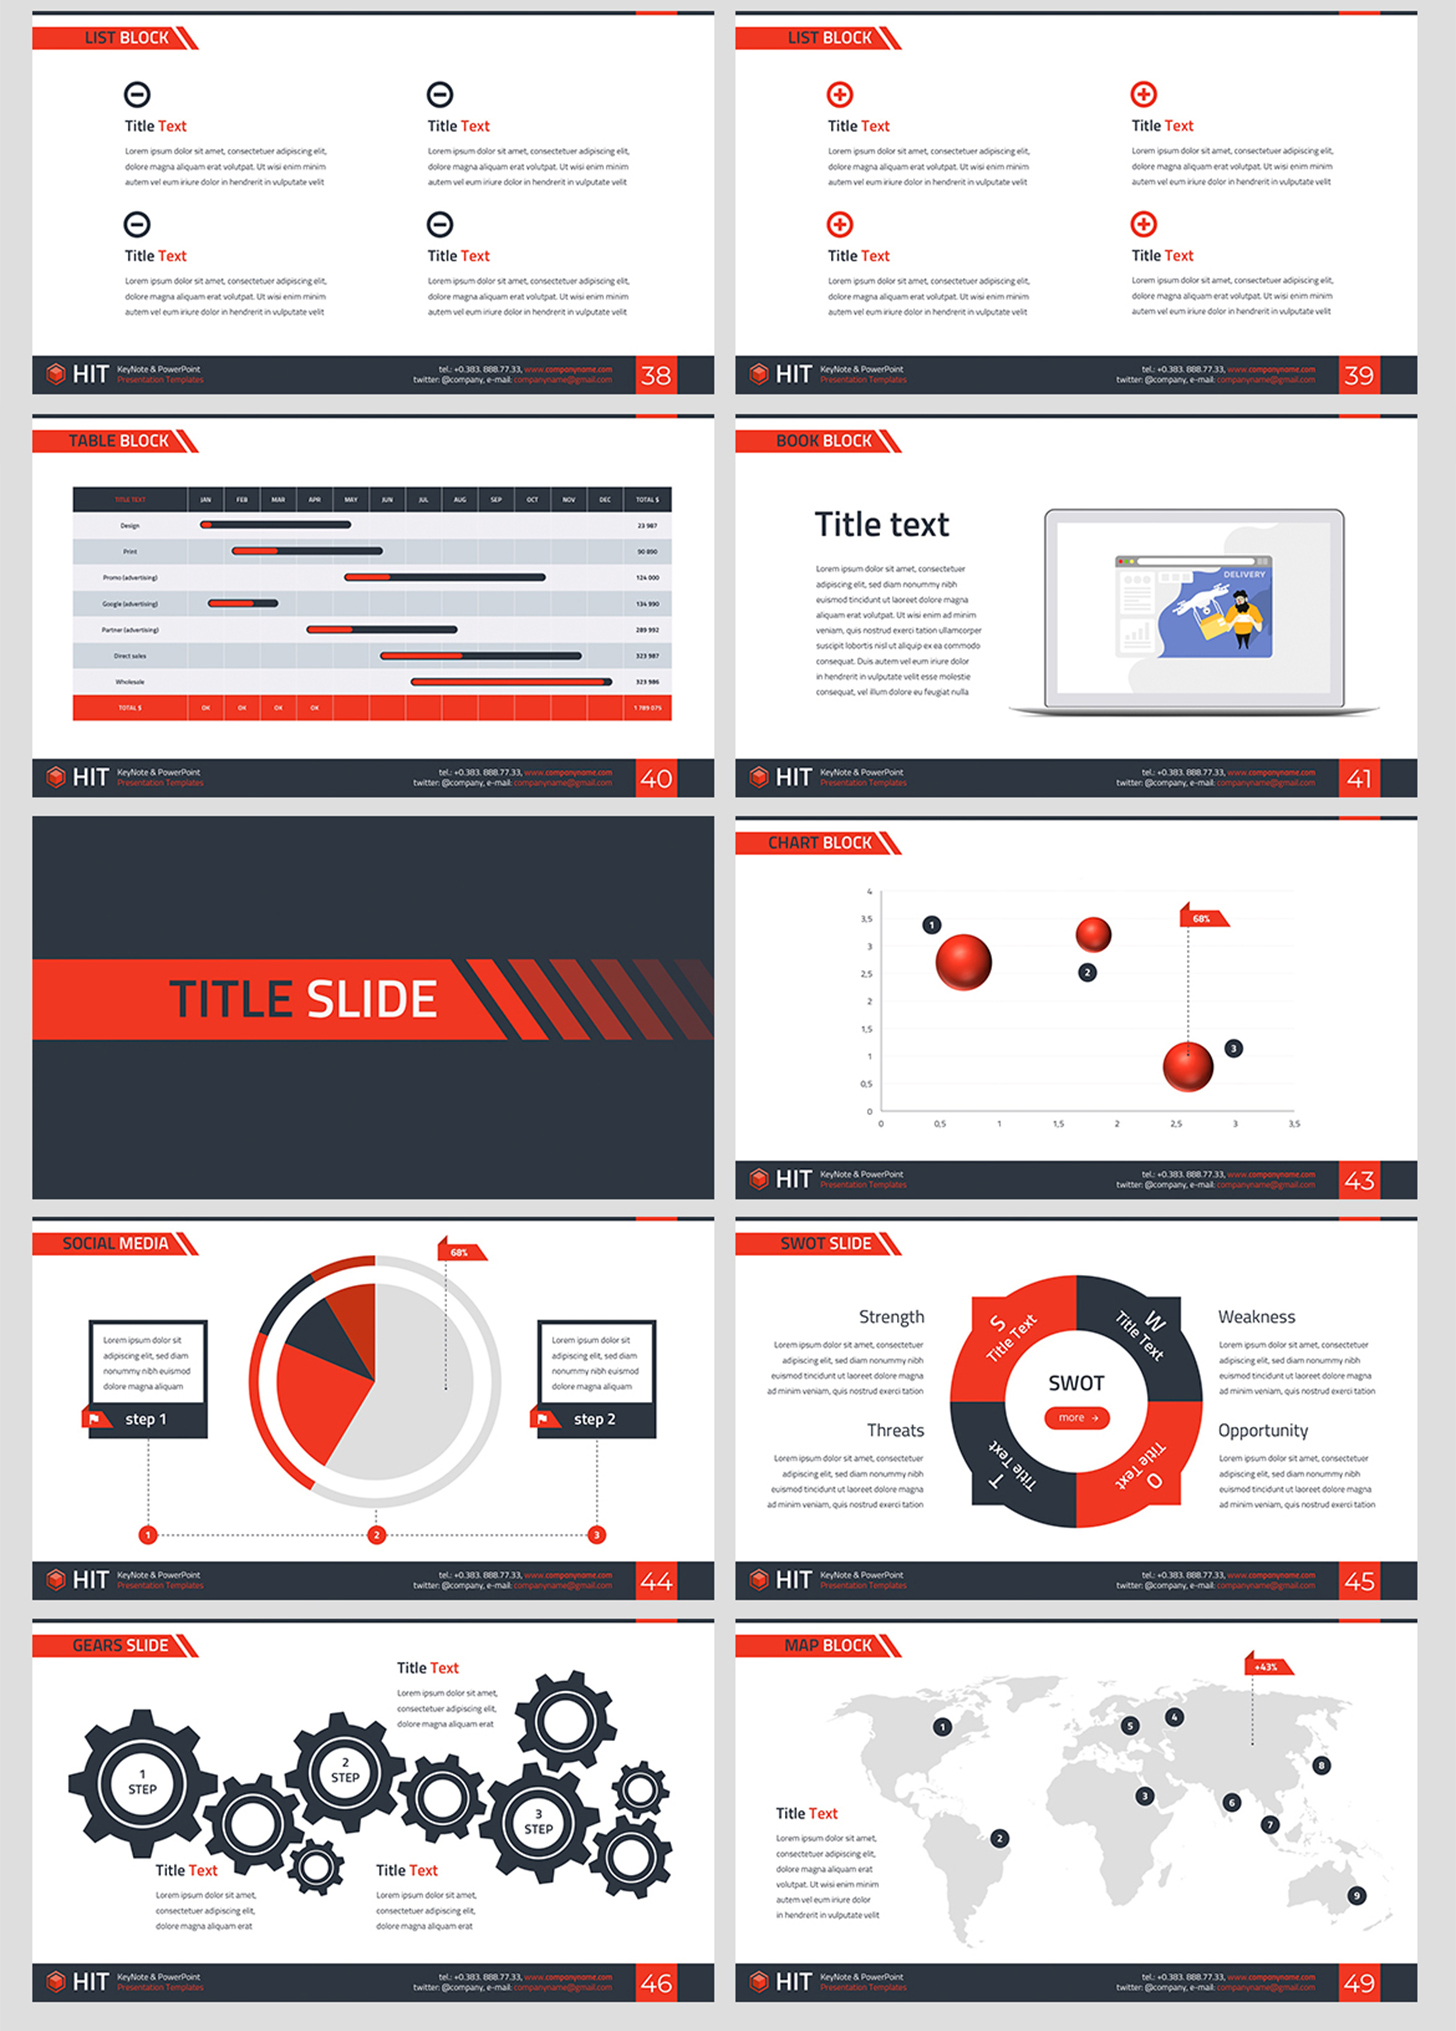 hit-professional-ppt-templates